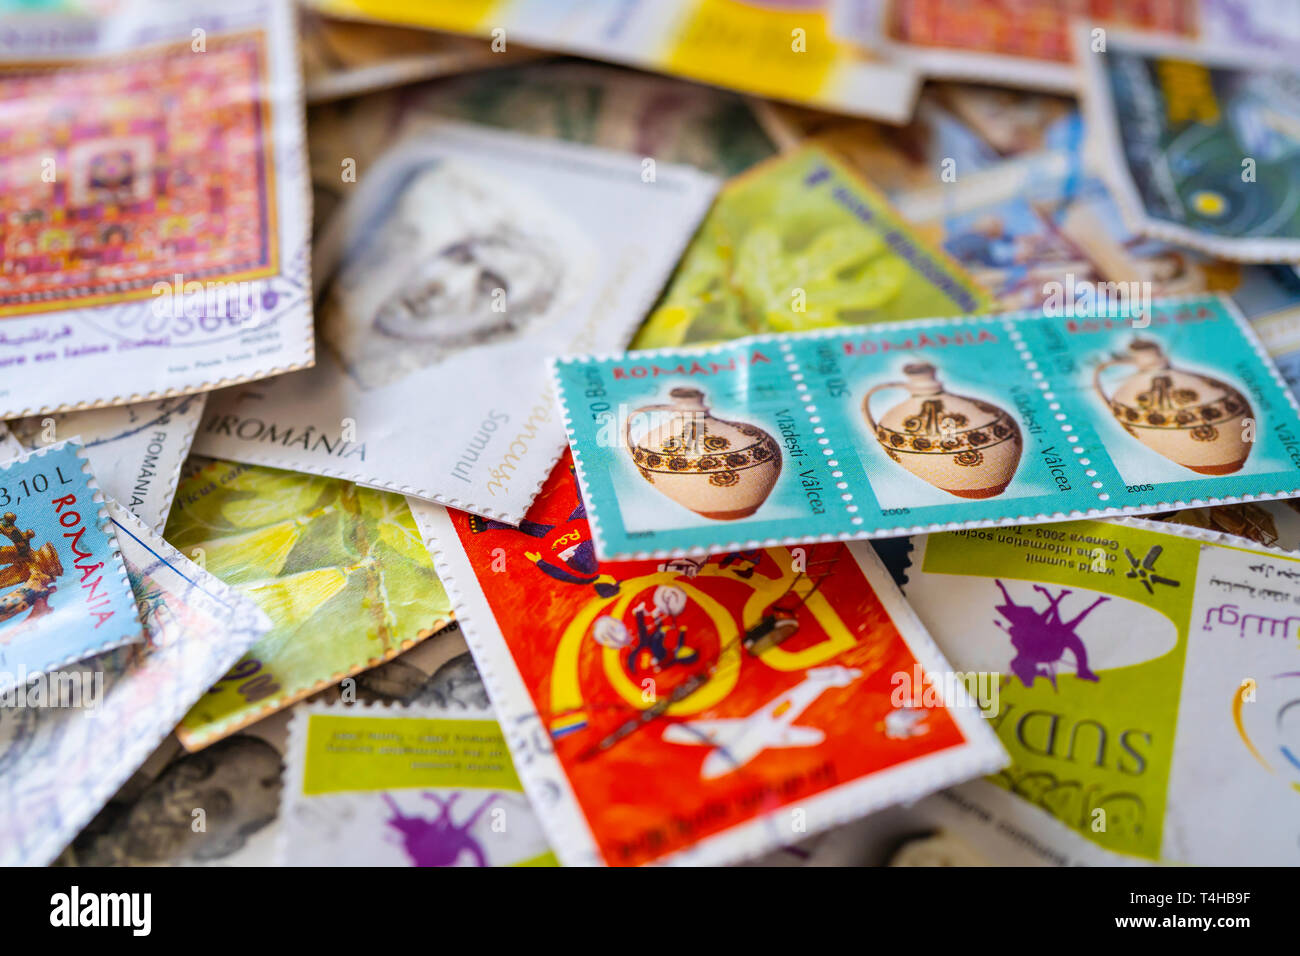 Collection of used postage stamps from around the world - Stock Image